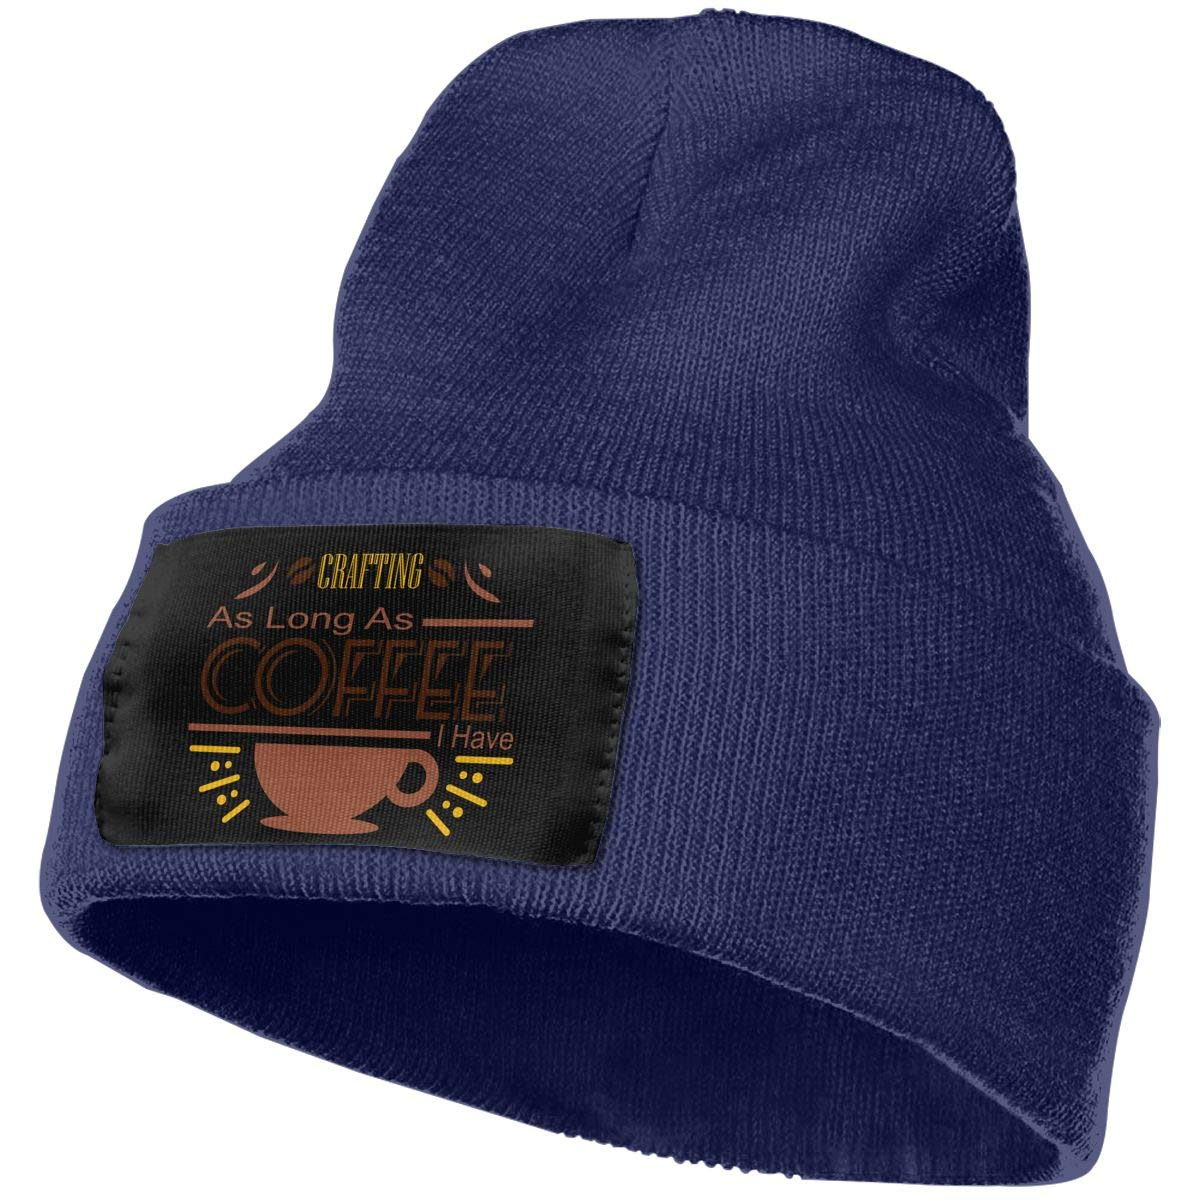 Crafting As Long As Coffee I Have Warm Winter Hat Knit Beanie Skull Cap Cuff Beanie Hat Winter Hats for Men /& Women